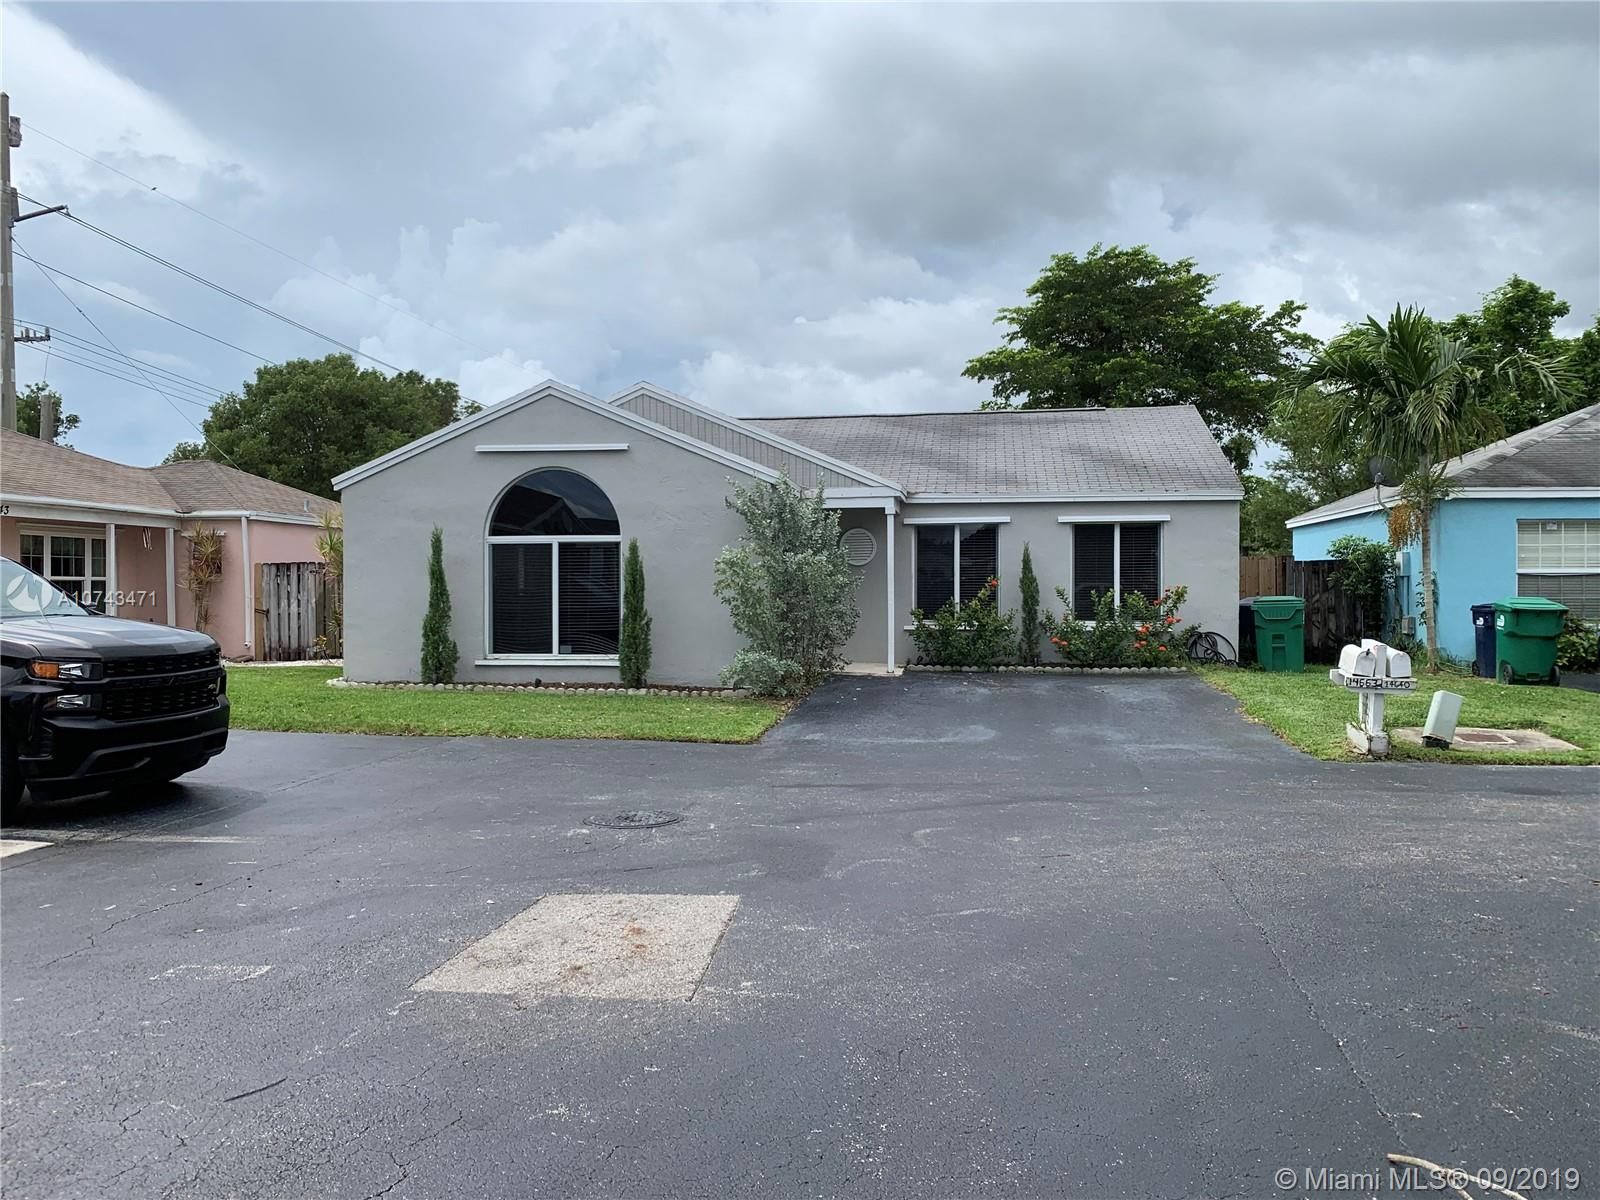 14663 SW 125th Pl, Kendall in Miami-dade County County, FL 33186 Home for Sale